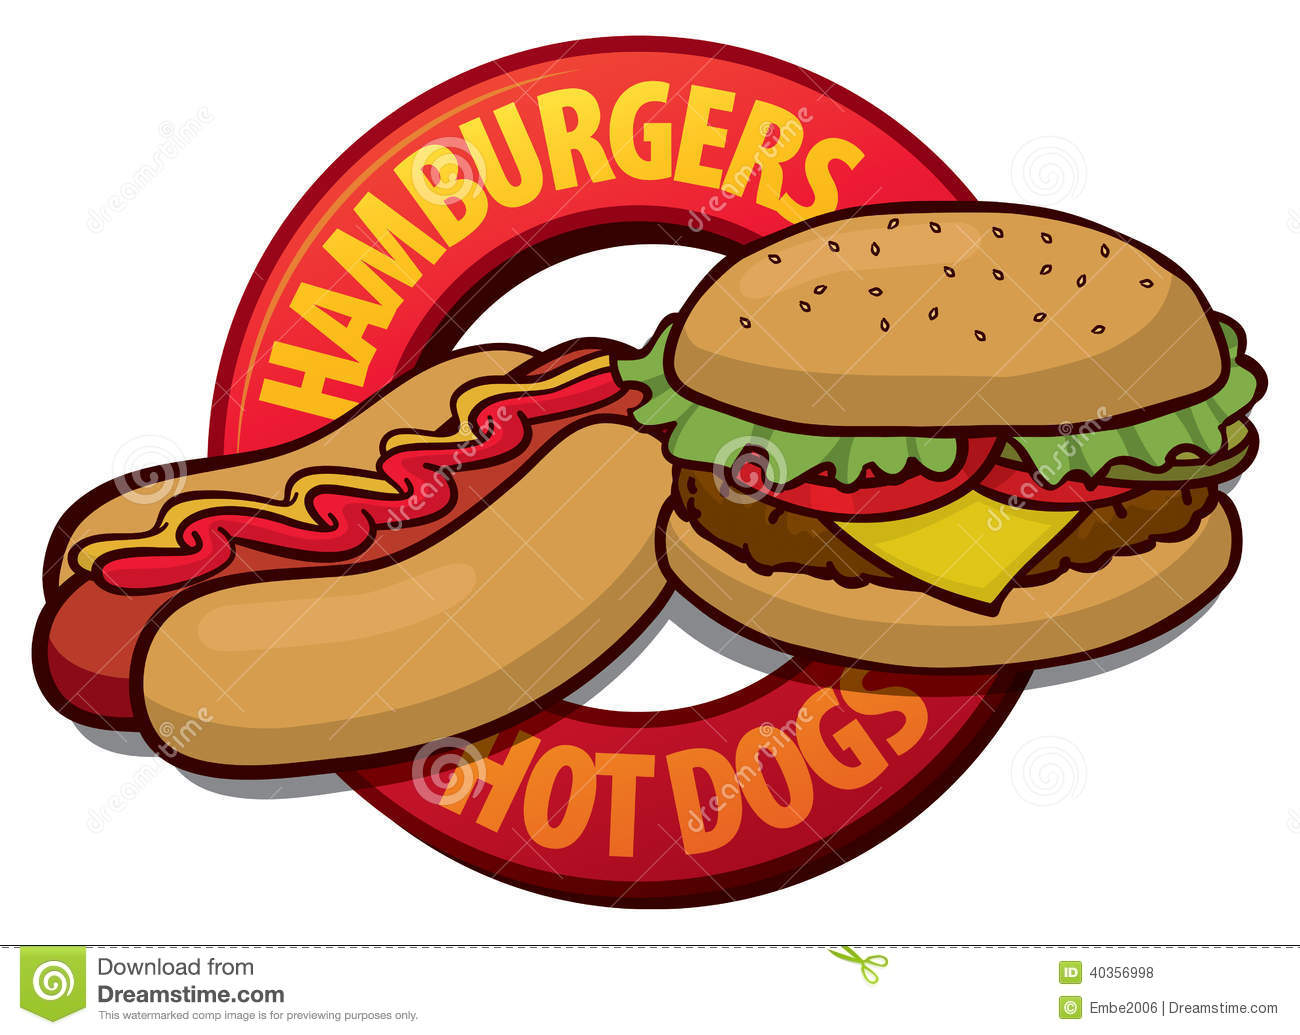 Hamburger Hot Dog Clip Art - PNG Hamburgers Hot Dogs